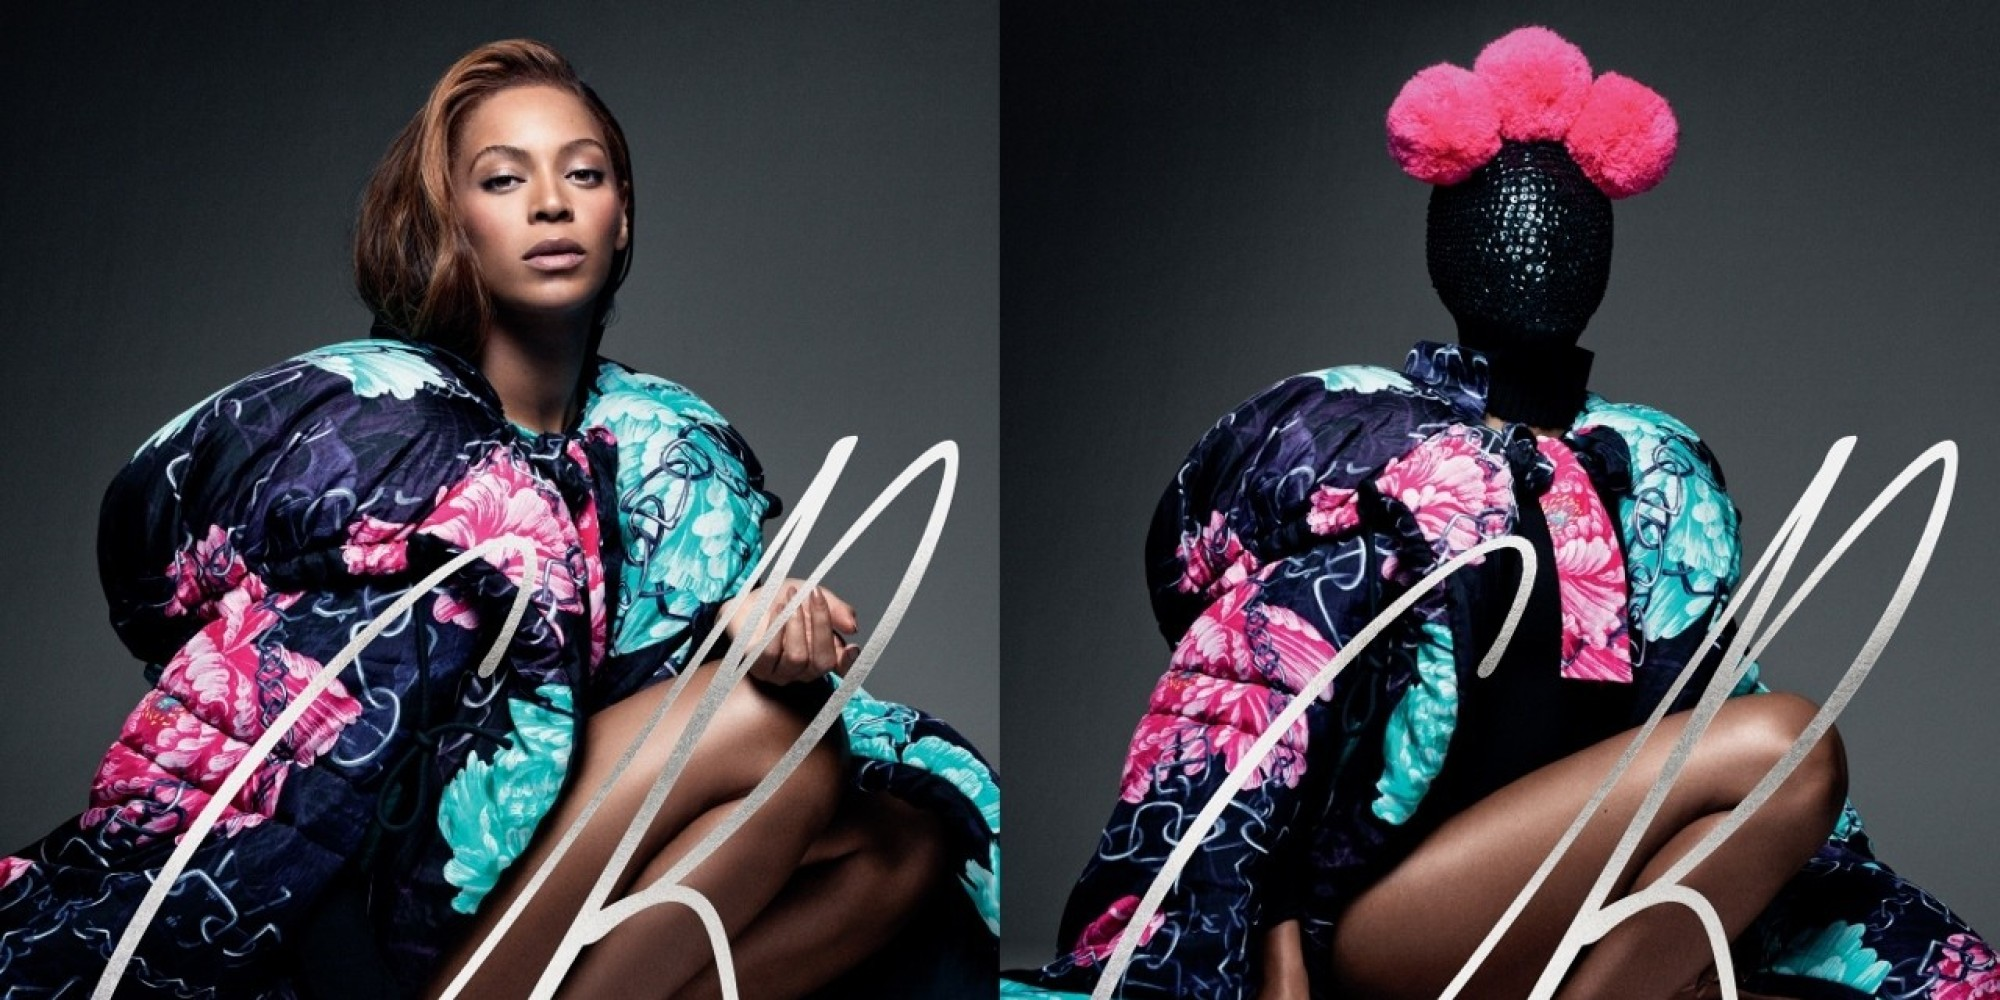 Fashion Book Cover Questions : Beyonce covers cr fashion book holds a chanel surfbort